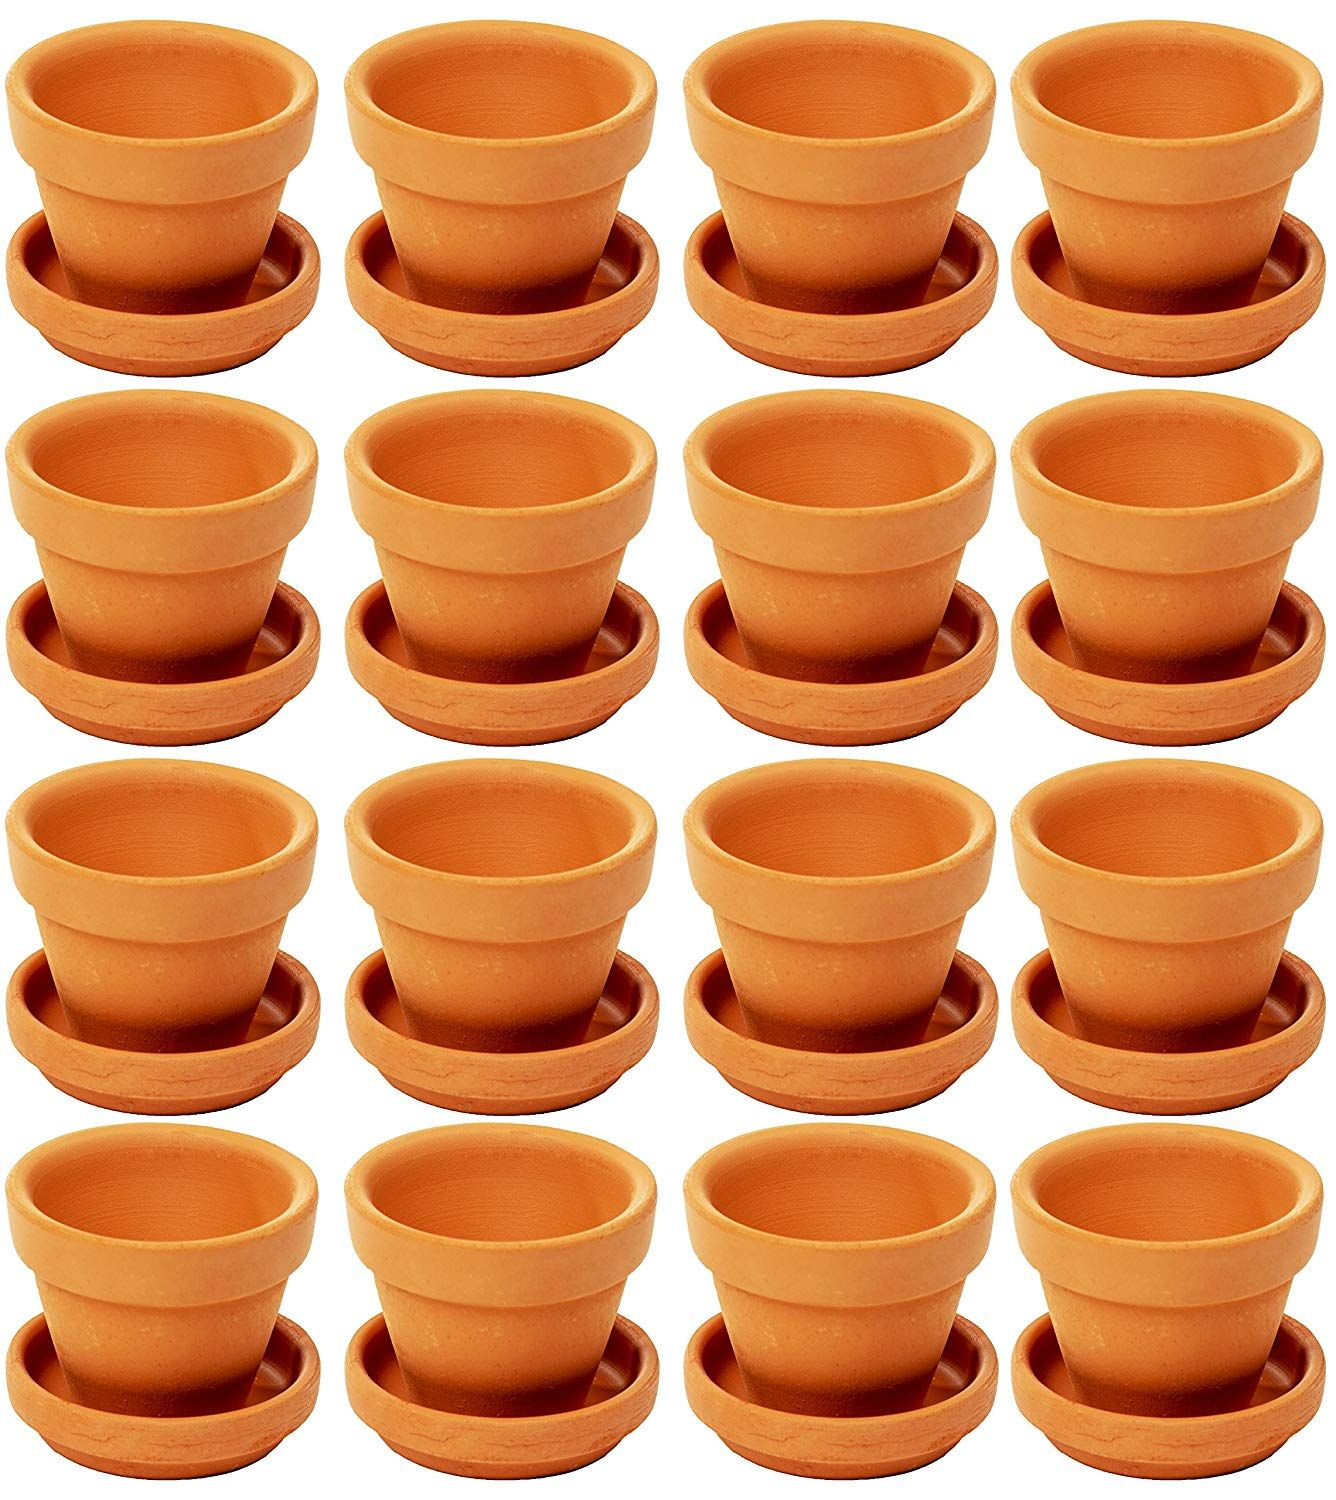 Amazon Com Mini Terra Cotta Pots With Saucer 16 Pack Clay Flower Pots With Saucers Mini Flower Pot P Clay Flower Pots Small Terracotta Pots Terracotta Pots